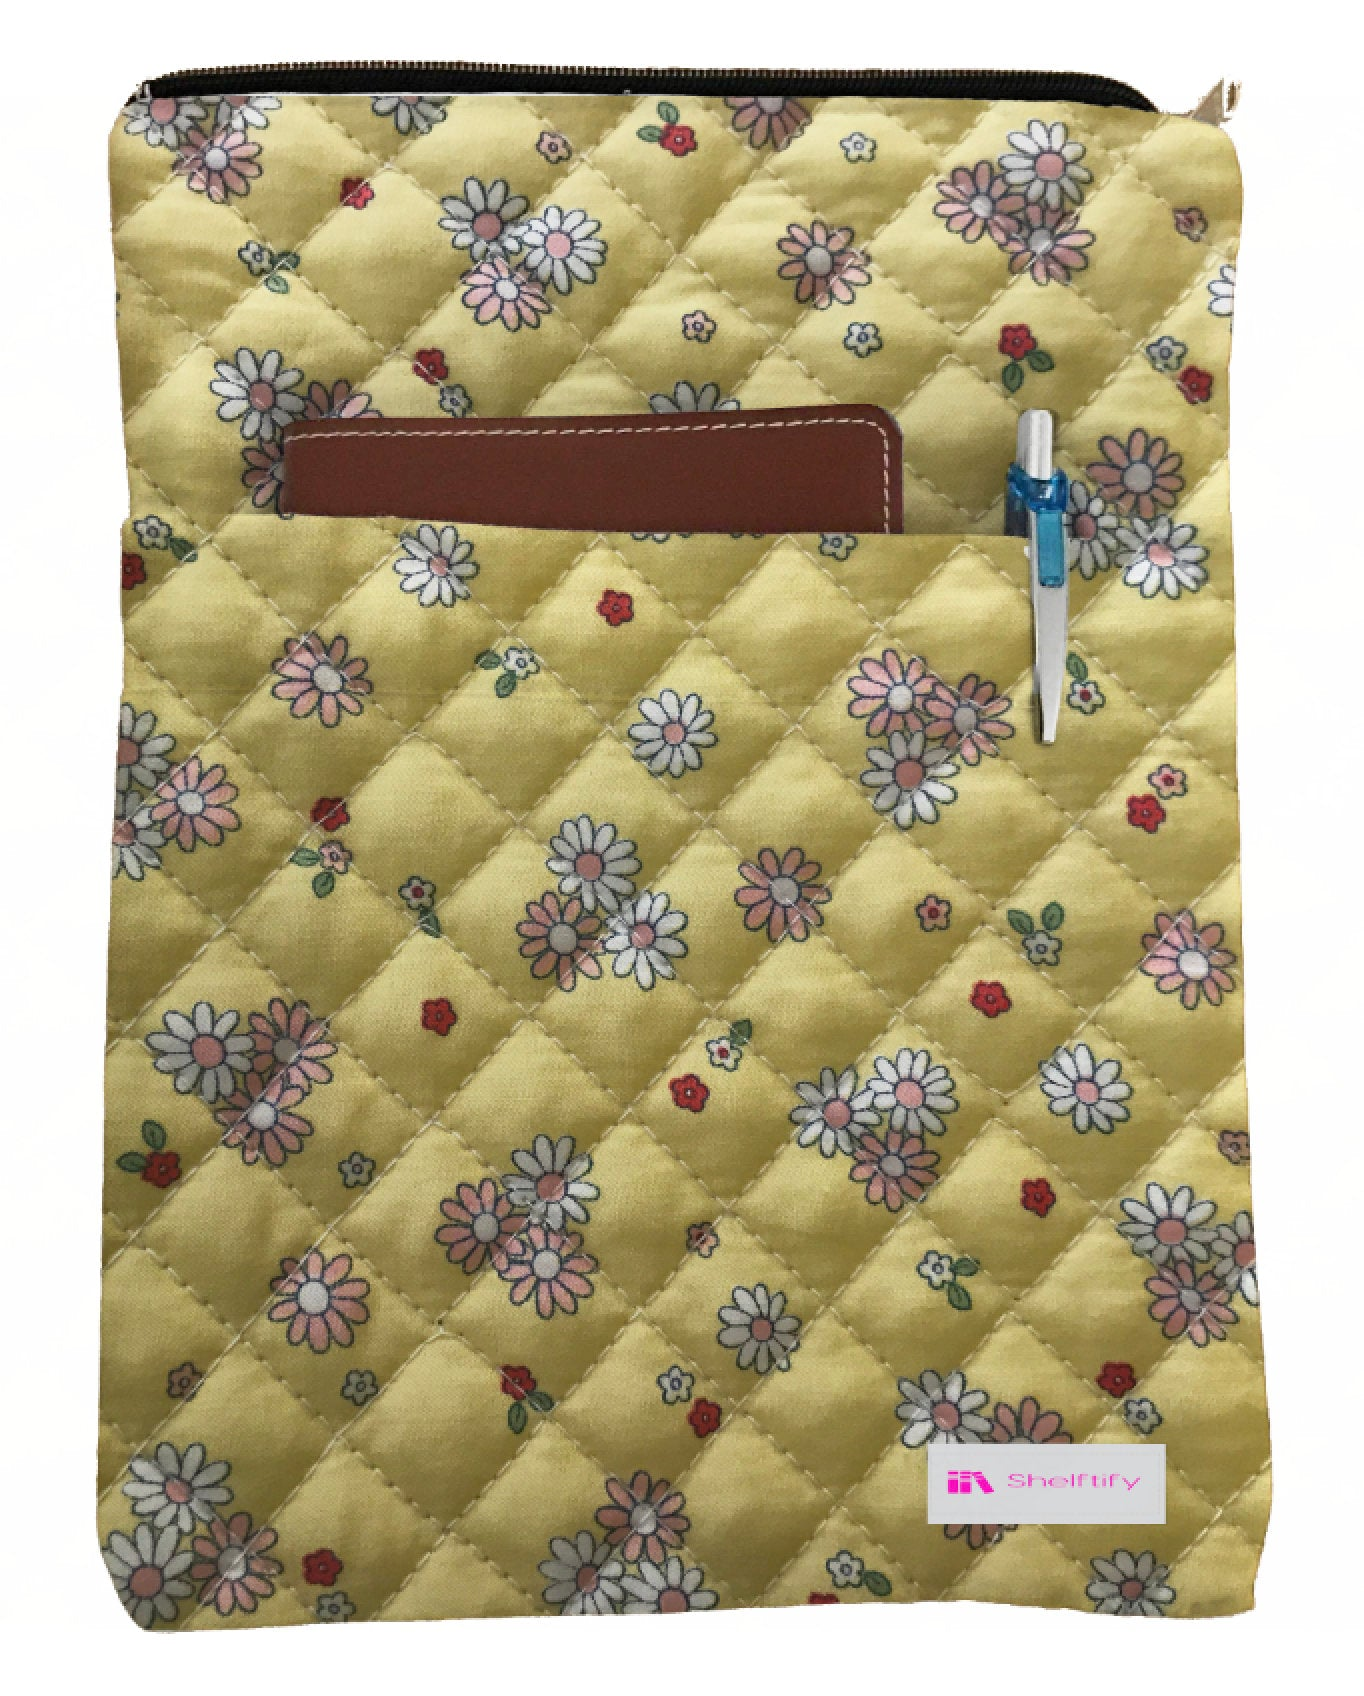 Little Flowers Yellow Book Sleeve - Quilt Fabric